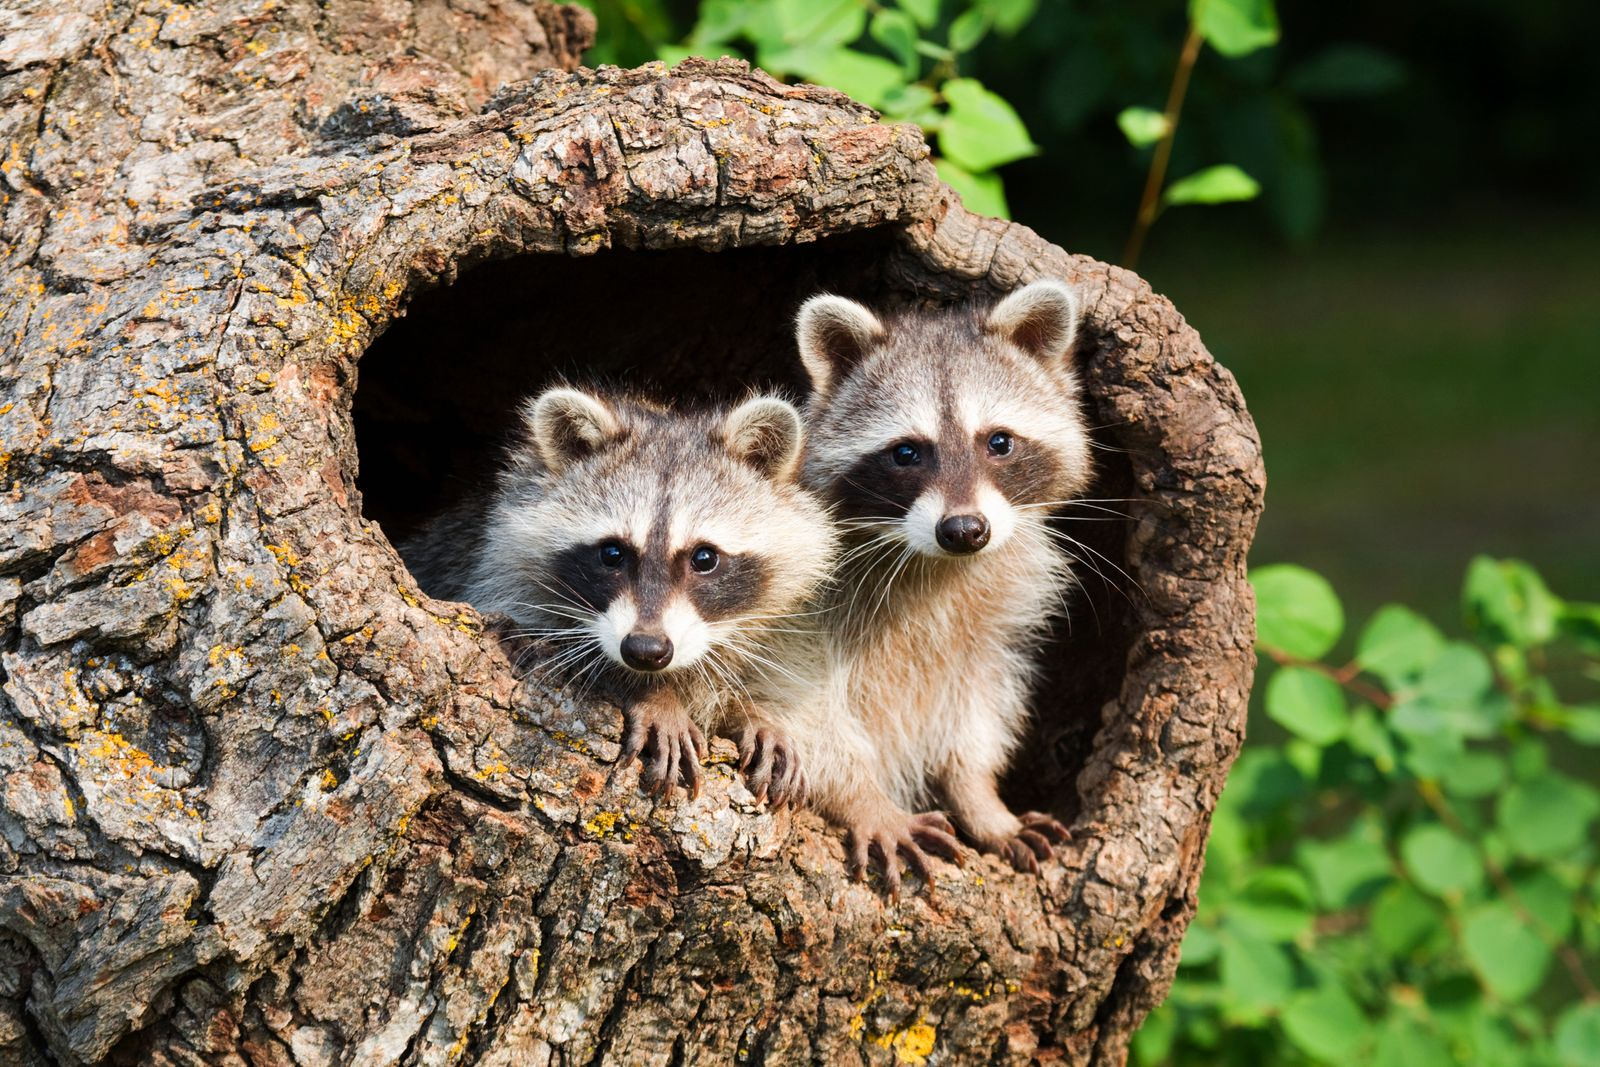 Two Raccoons in a tree hollow